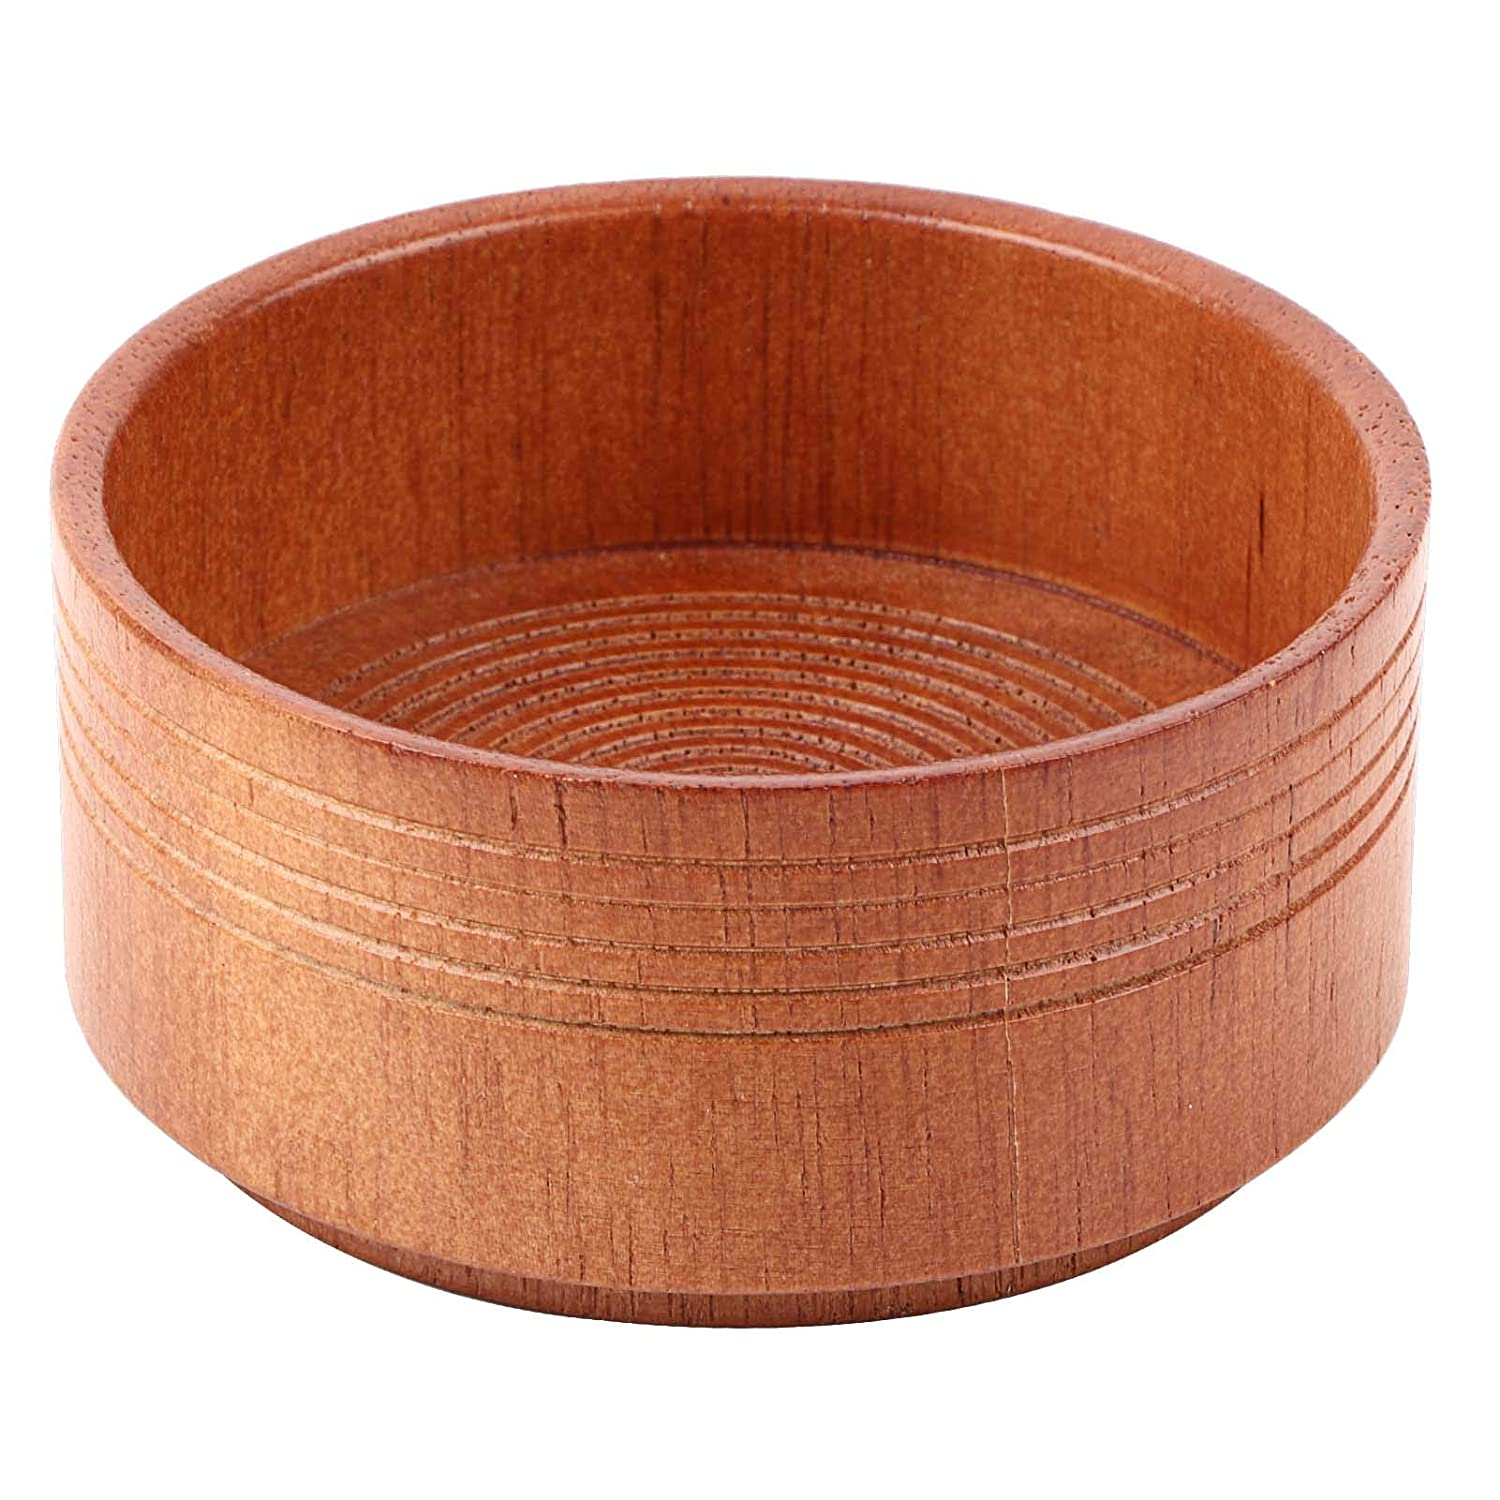 Wooden Shaving Soap Bowl OFFicial store For Shave Beard Hair Direct sale of manufacturer Removal